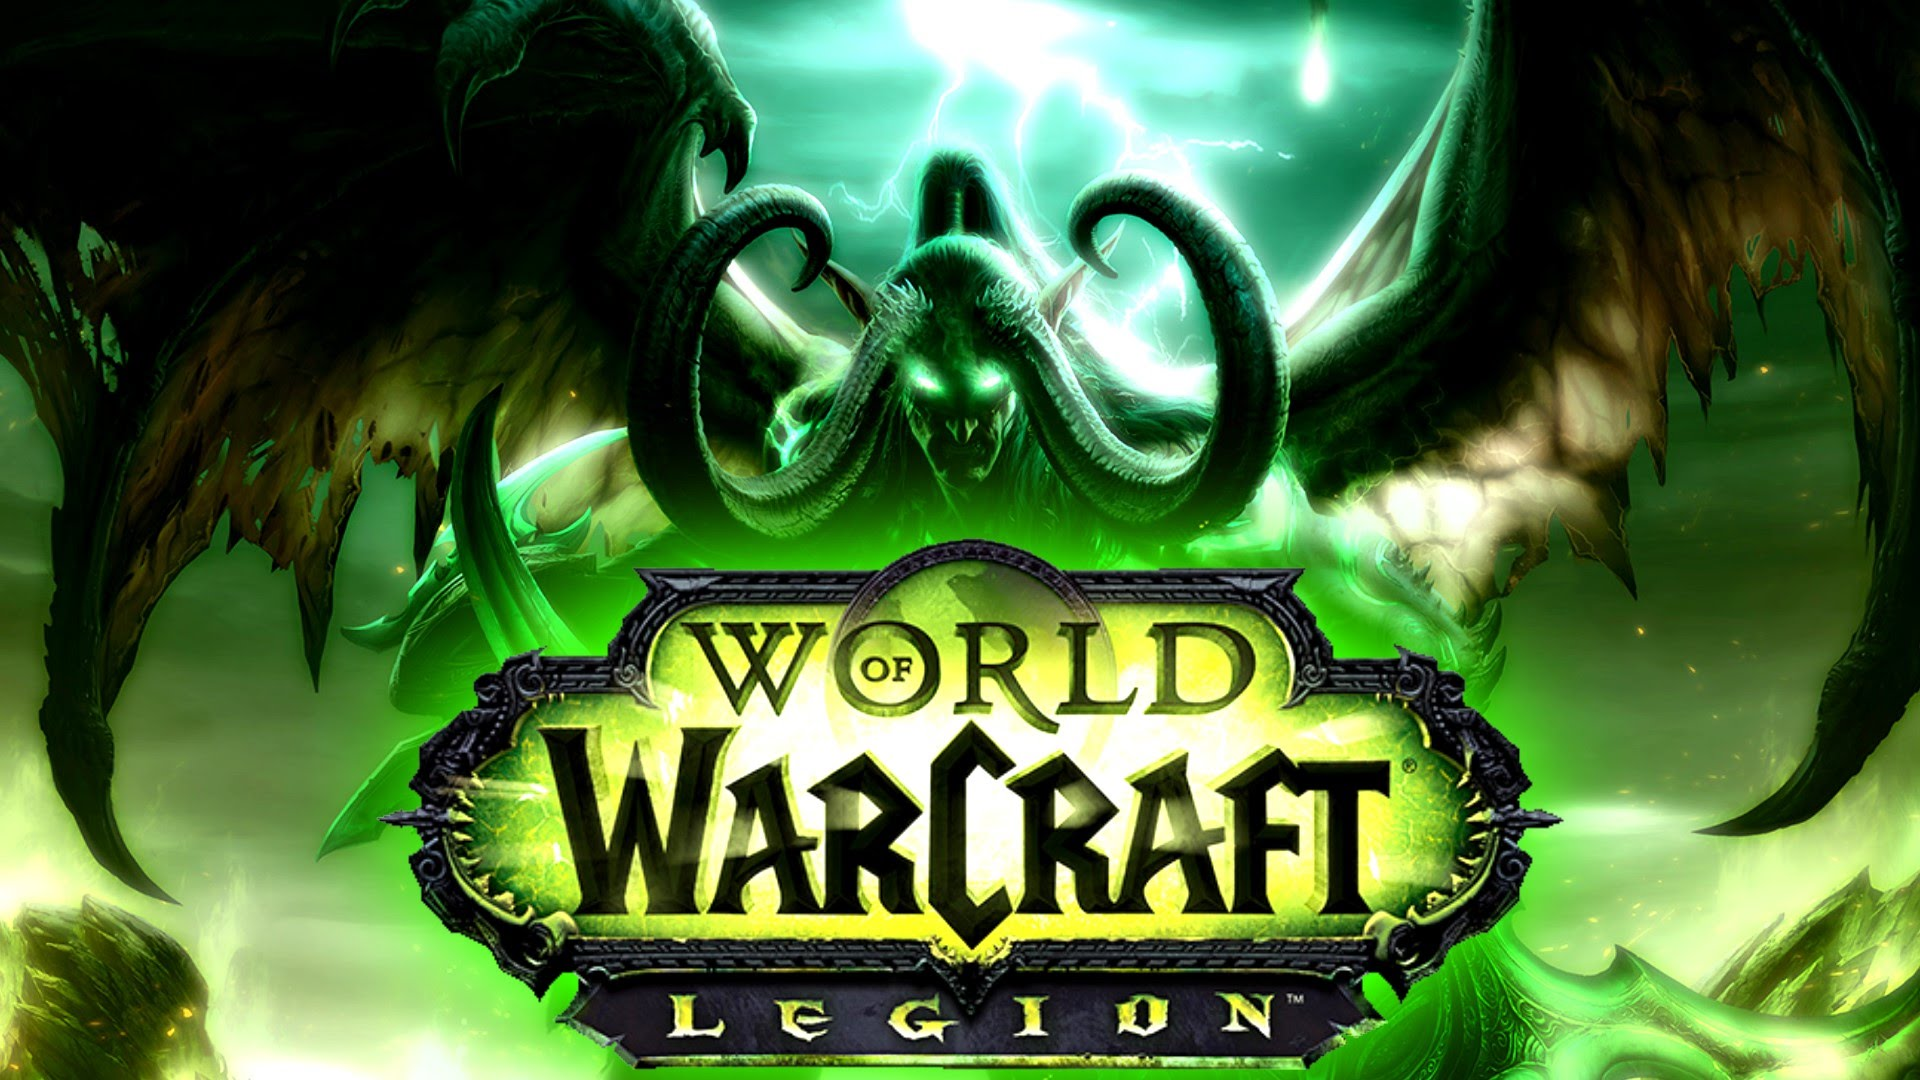 World of Warcraft: Legion HQ wallpapers